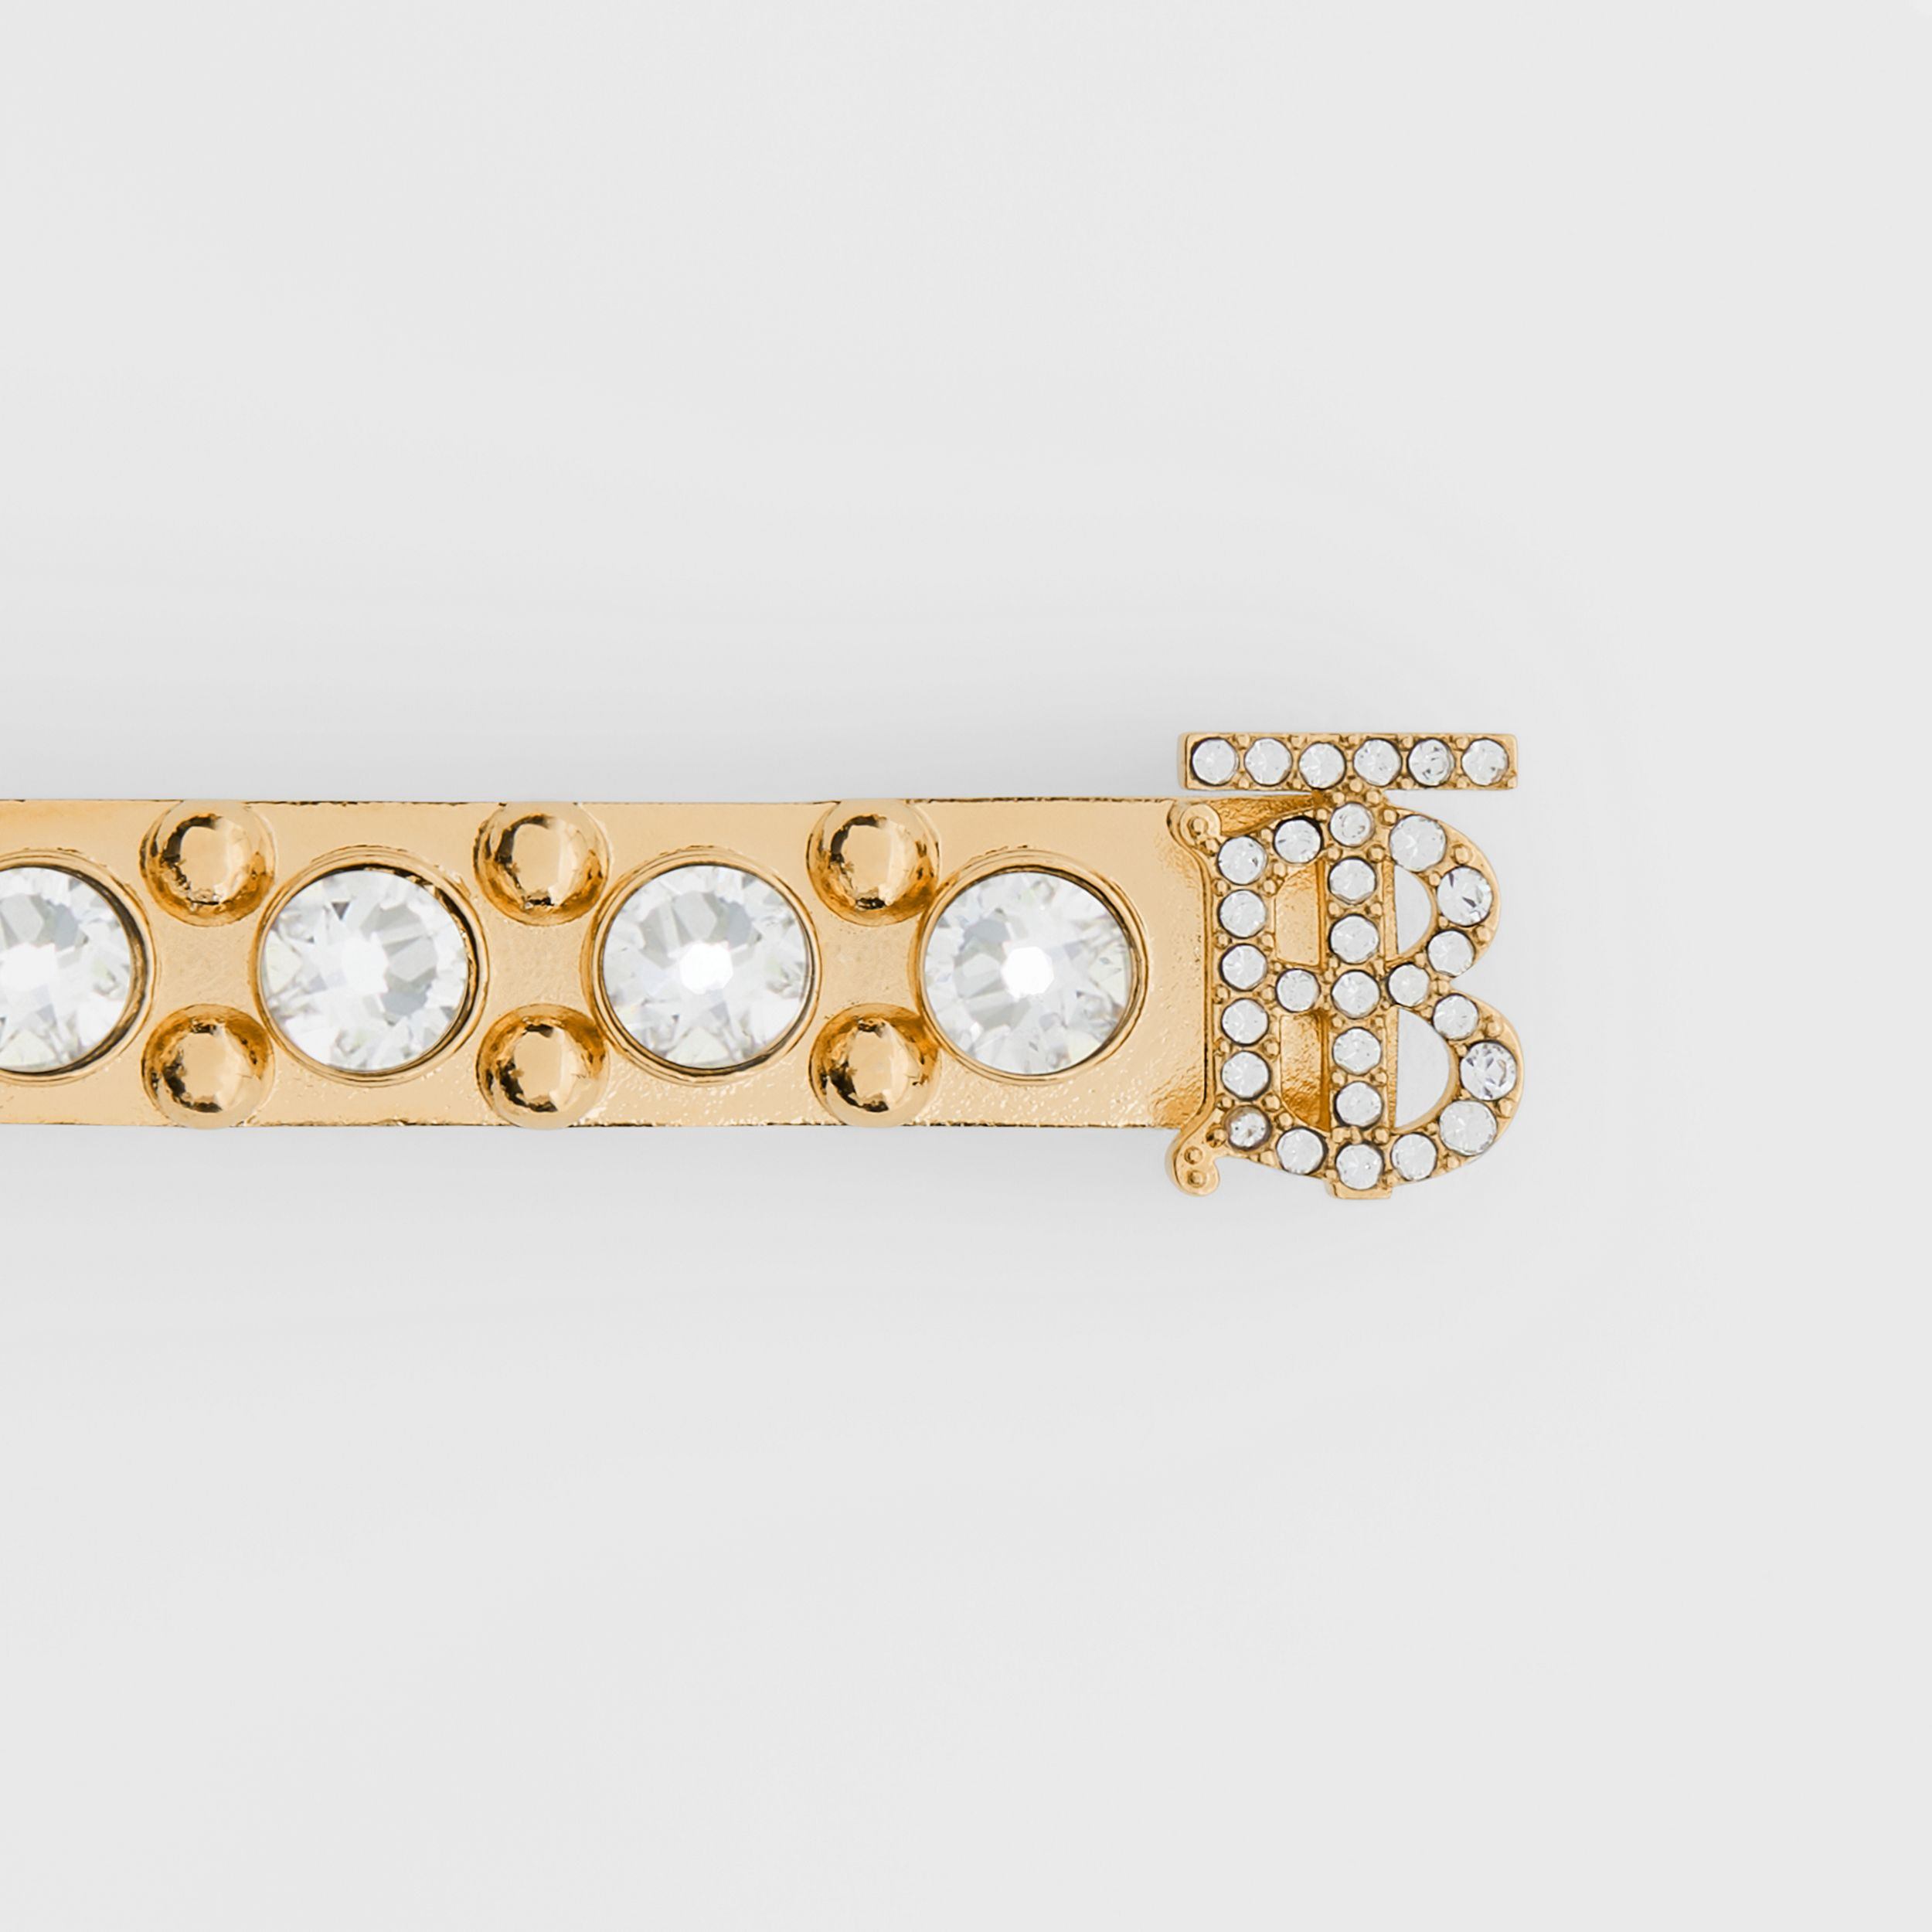 Crystal Monogram Motif Gold-plated Barrette in Light | Burberry Singapore - 3